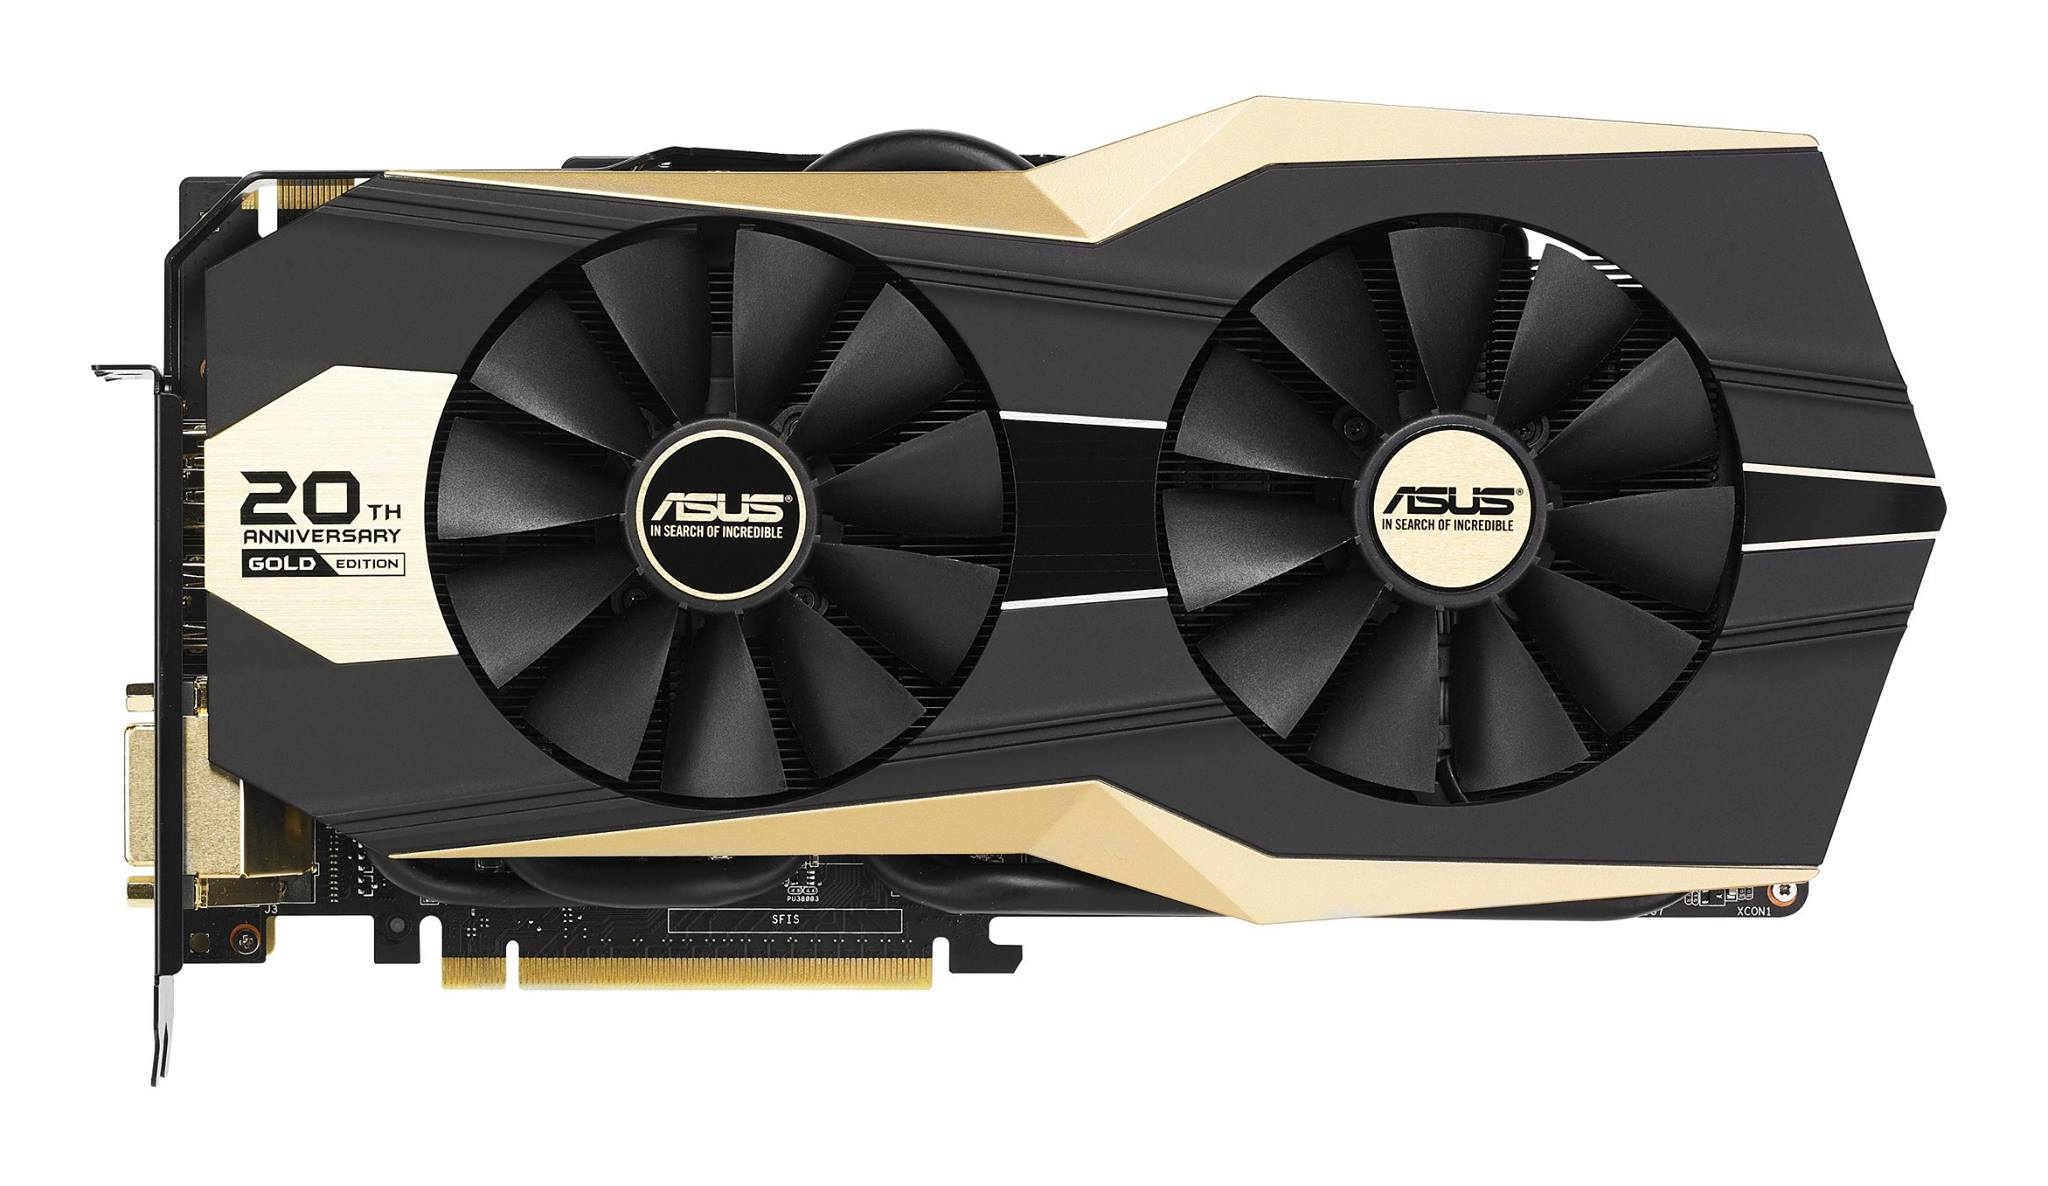 ASUS-GTX-980-GOLD-EDITION-03